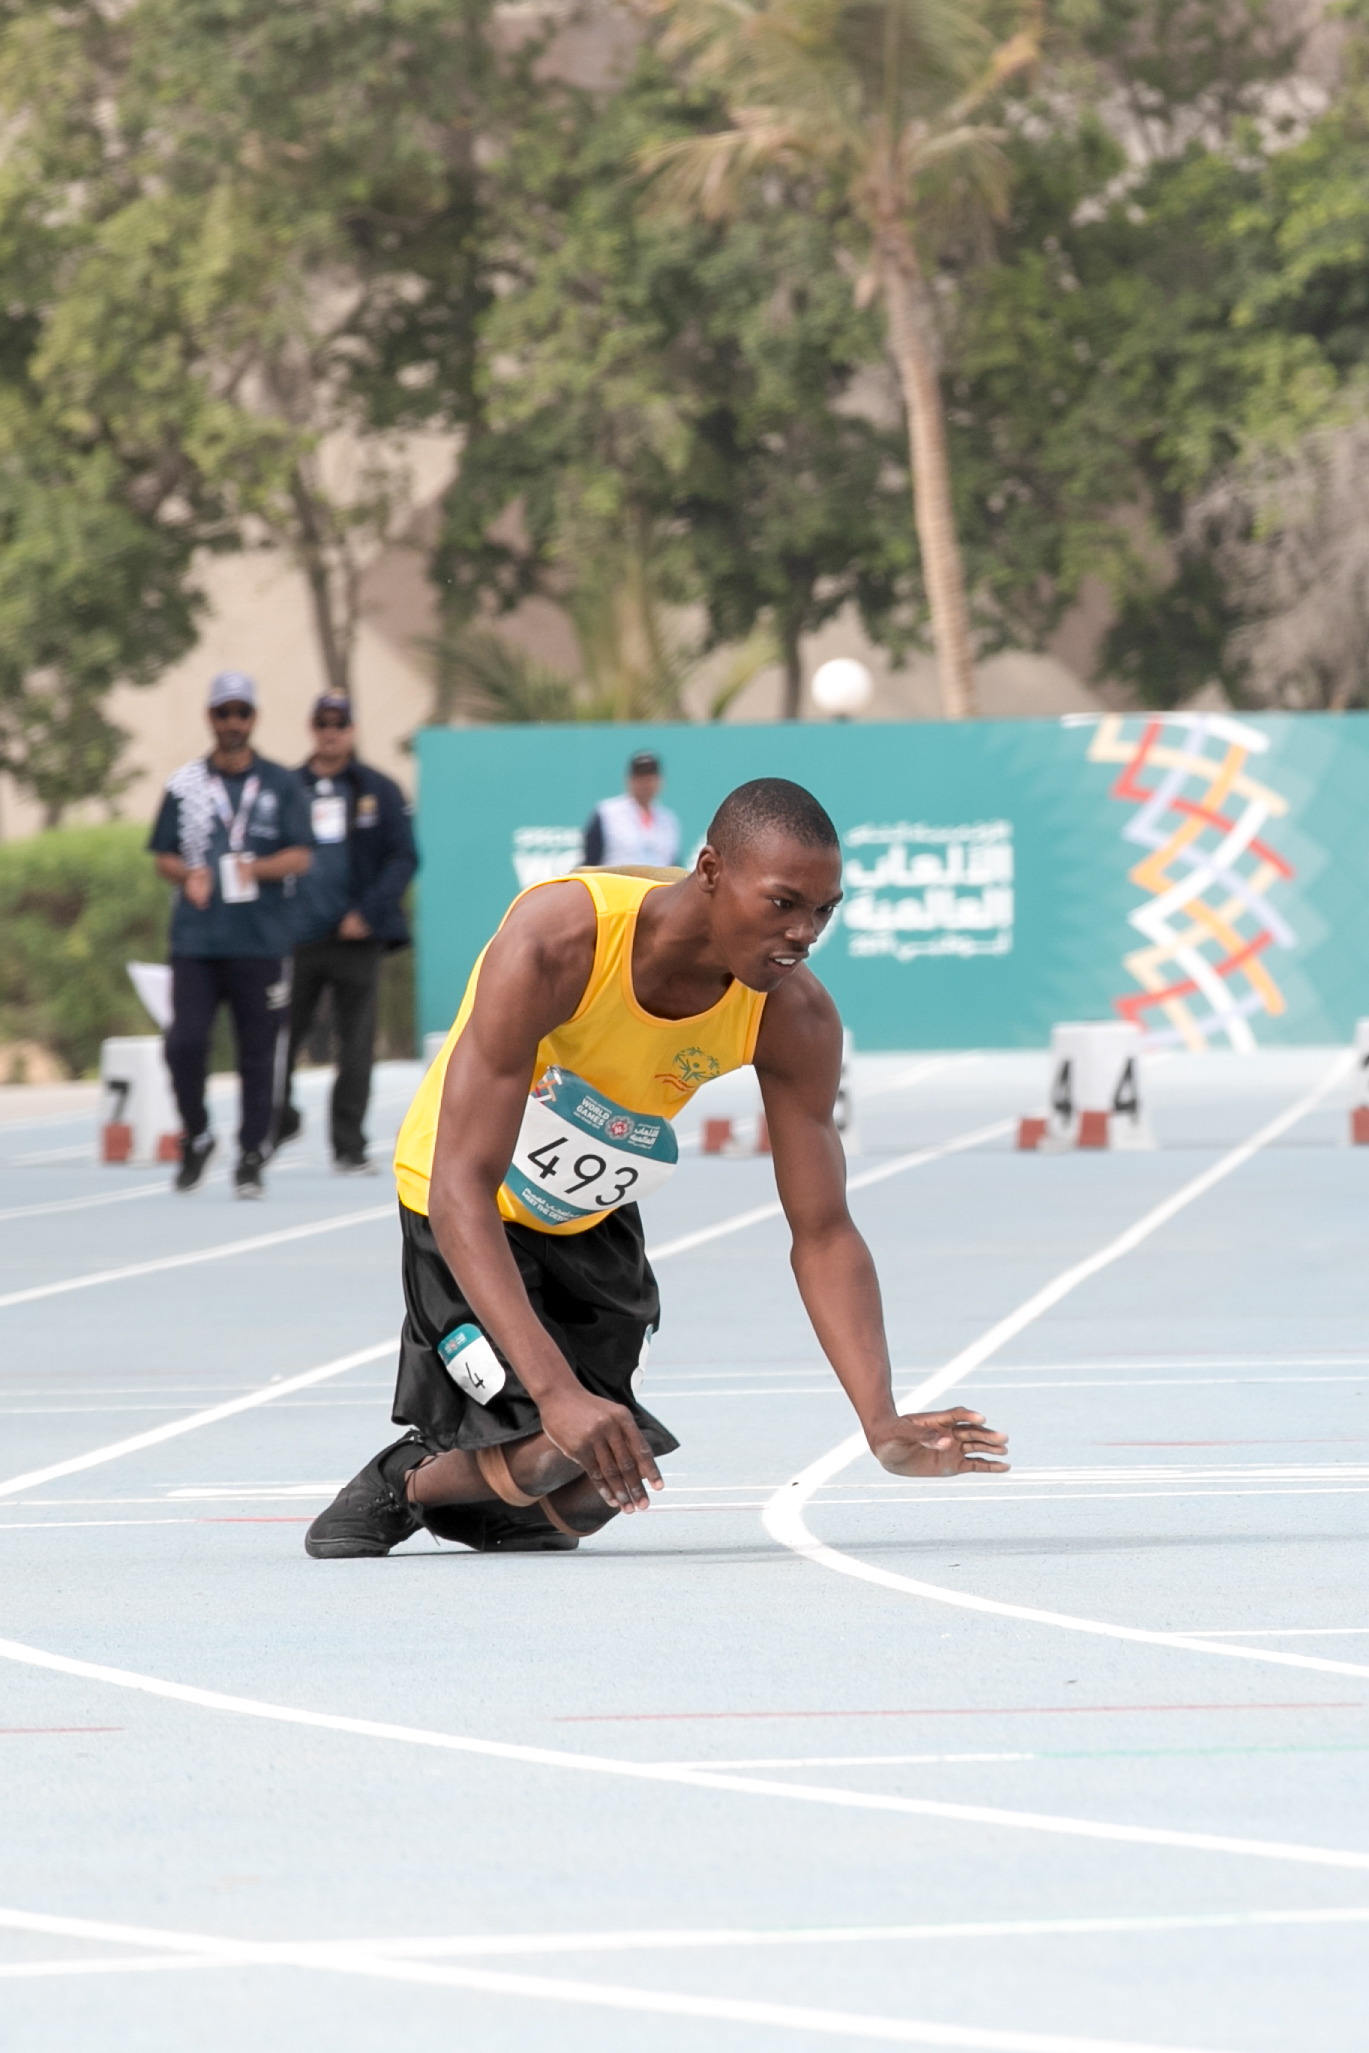 Jamaica's Kirk Wint competes in the 50m sprint at the 2019 Special Olympics World Games